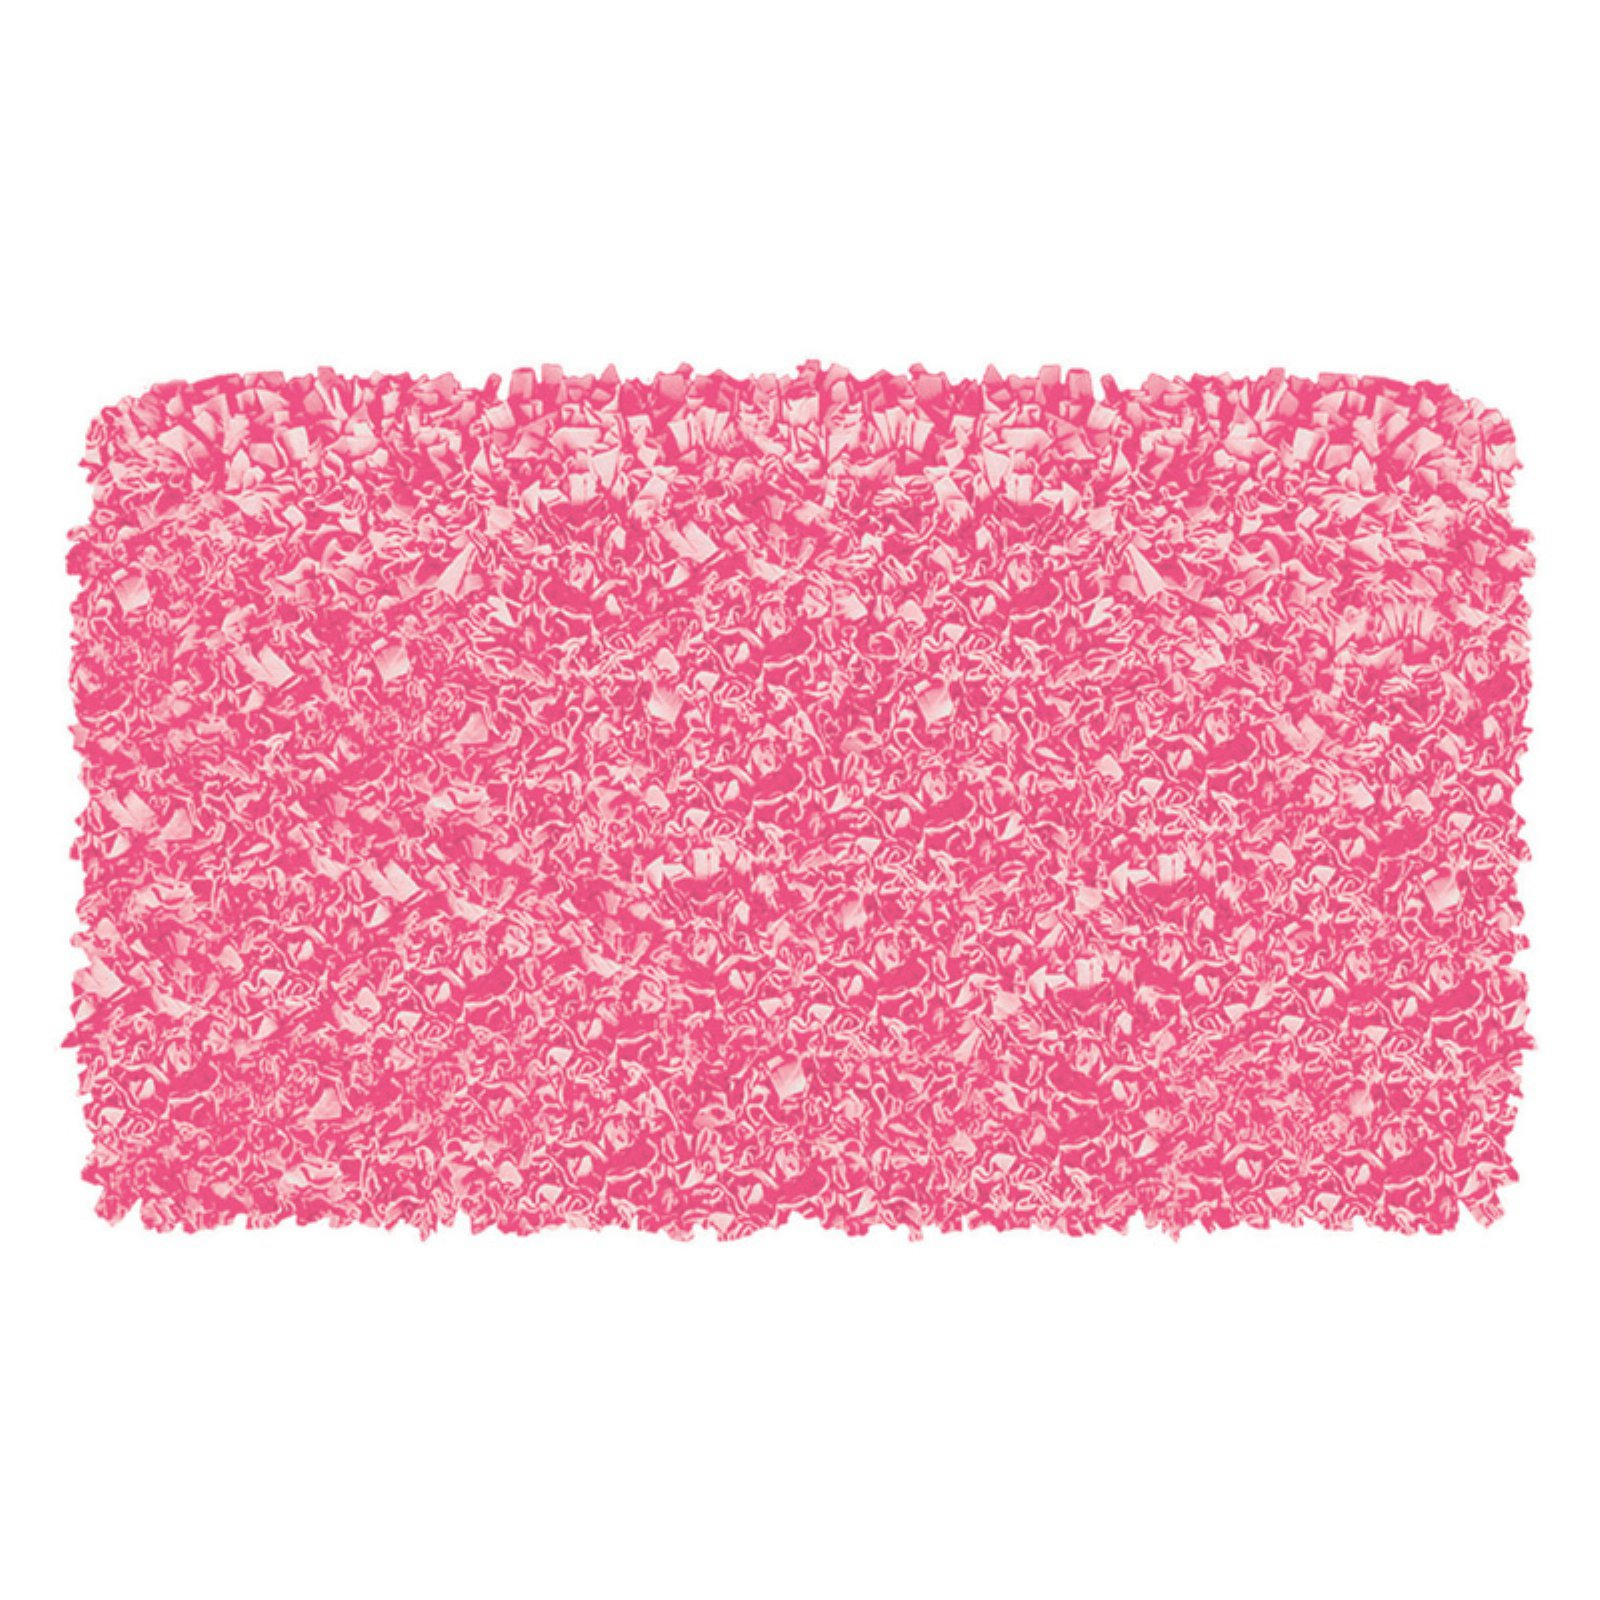 The Rug Market Shaggy Raggy Bubble Gum Area Rug, Size 2.8' x 4.8'